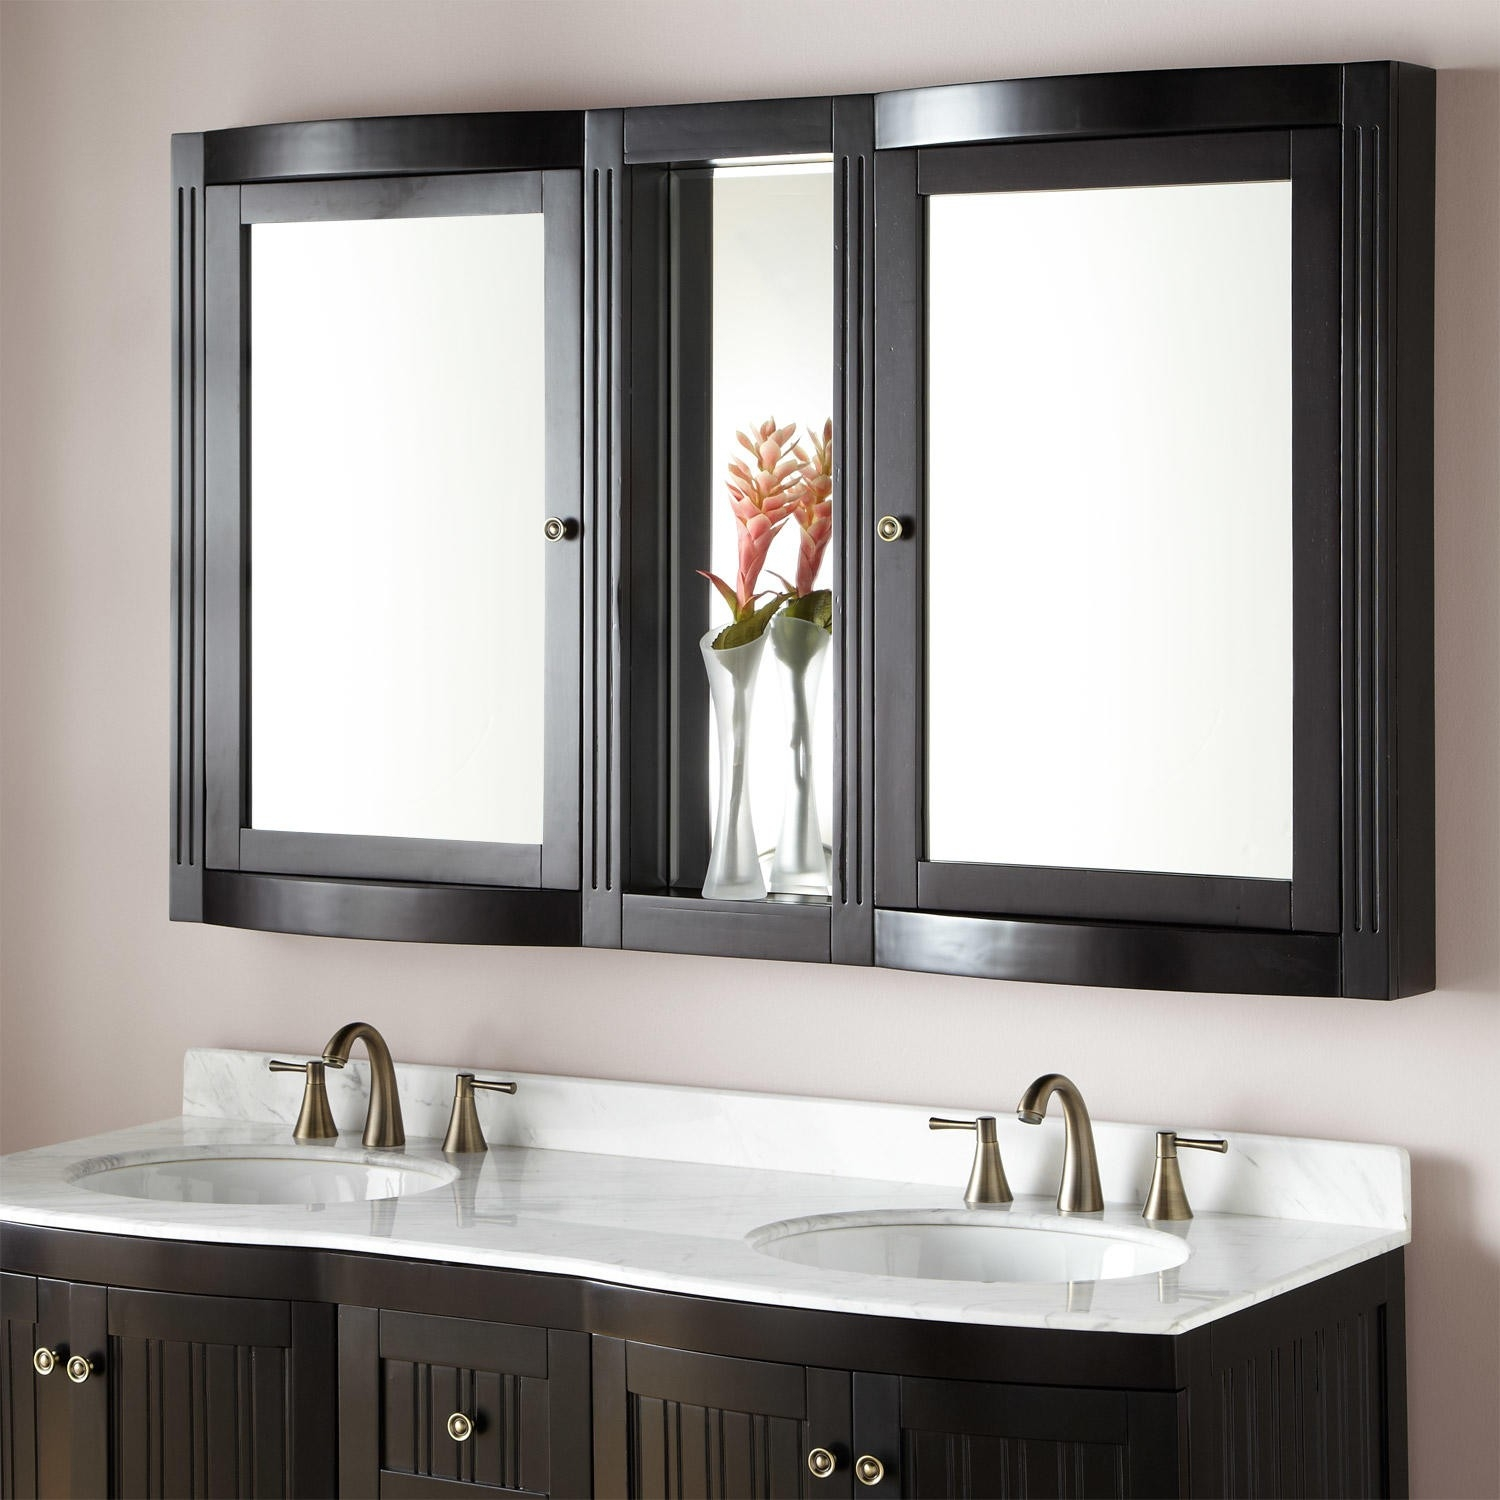 Matching Bathroom Cabinets And Mirrors